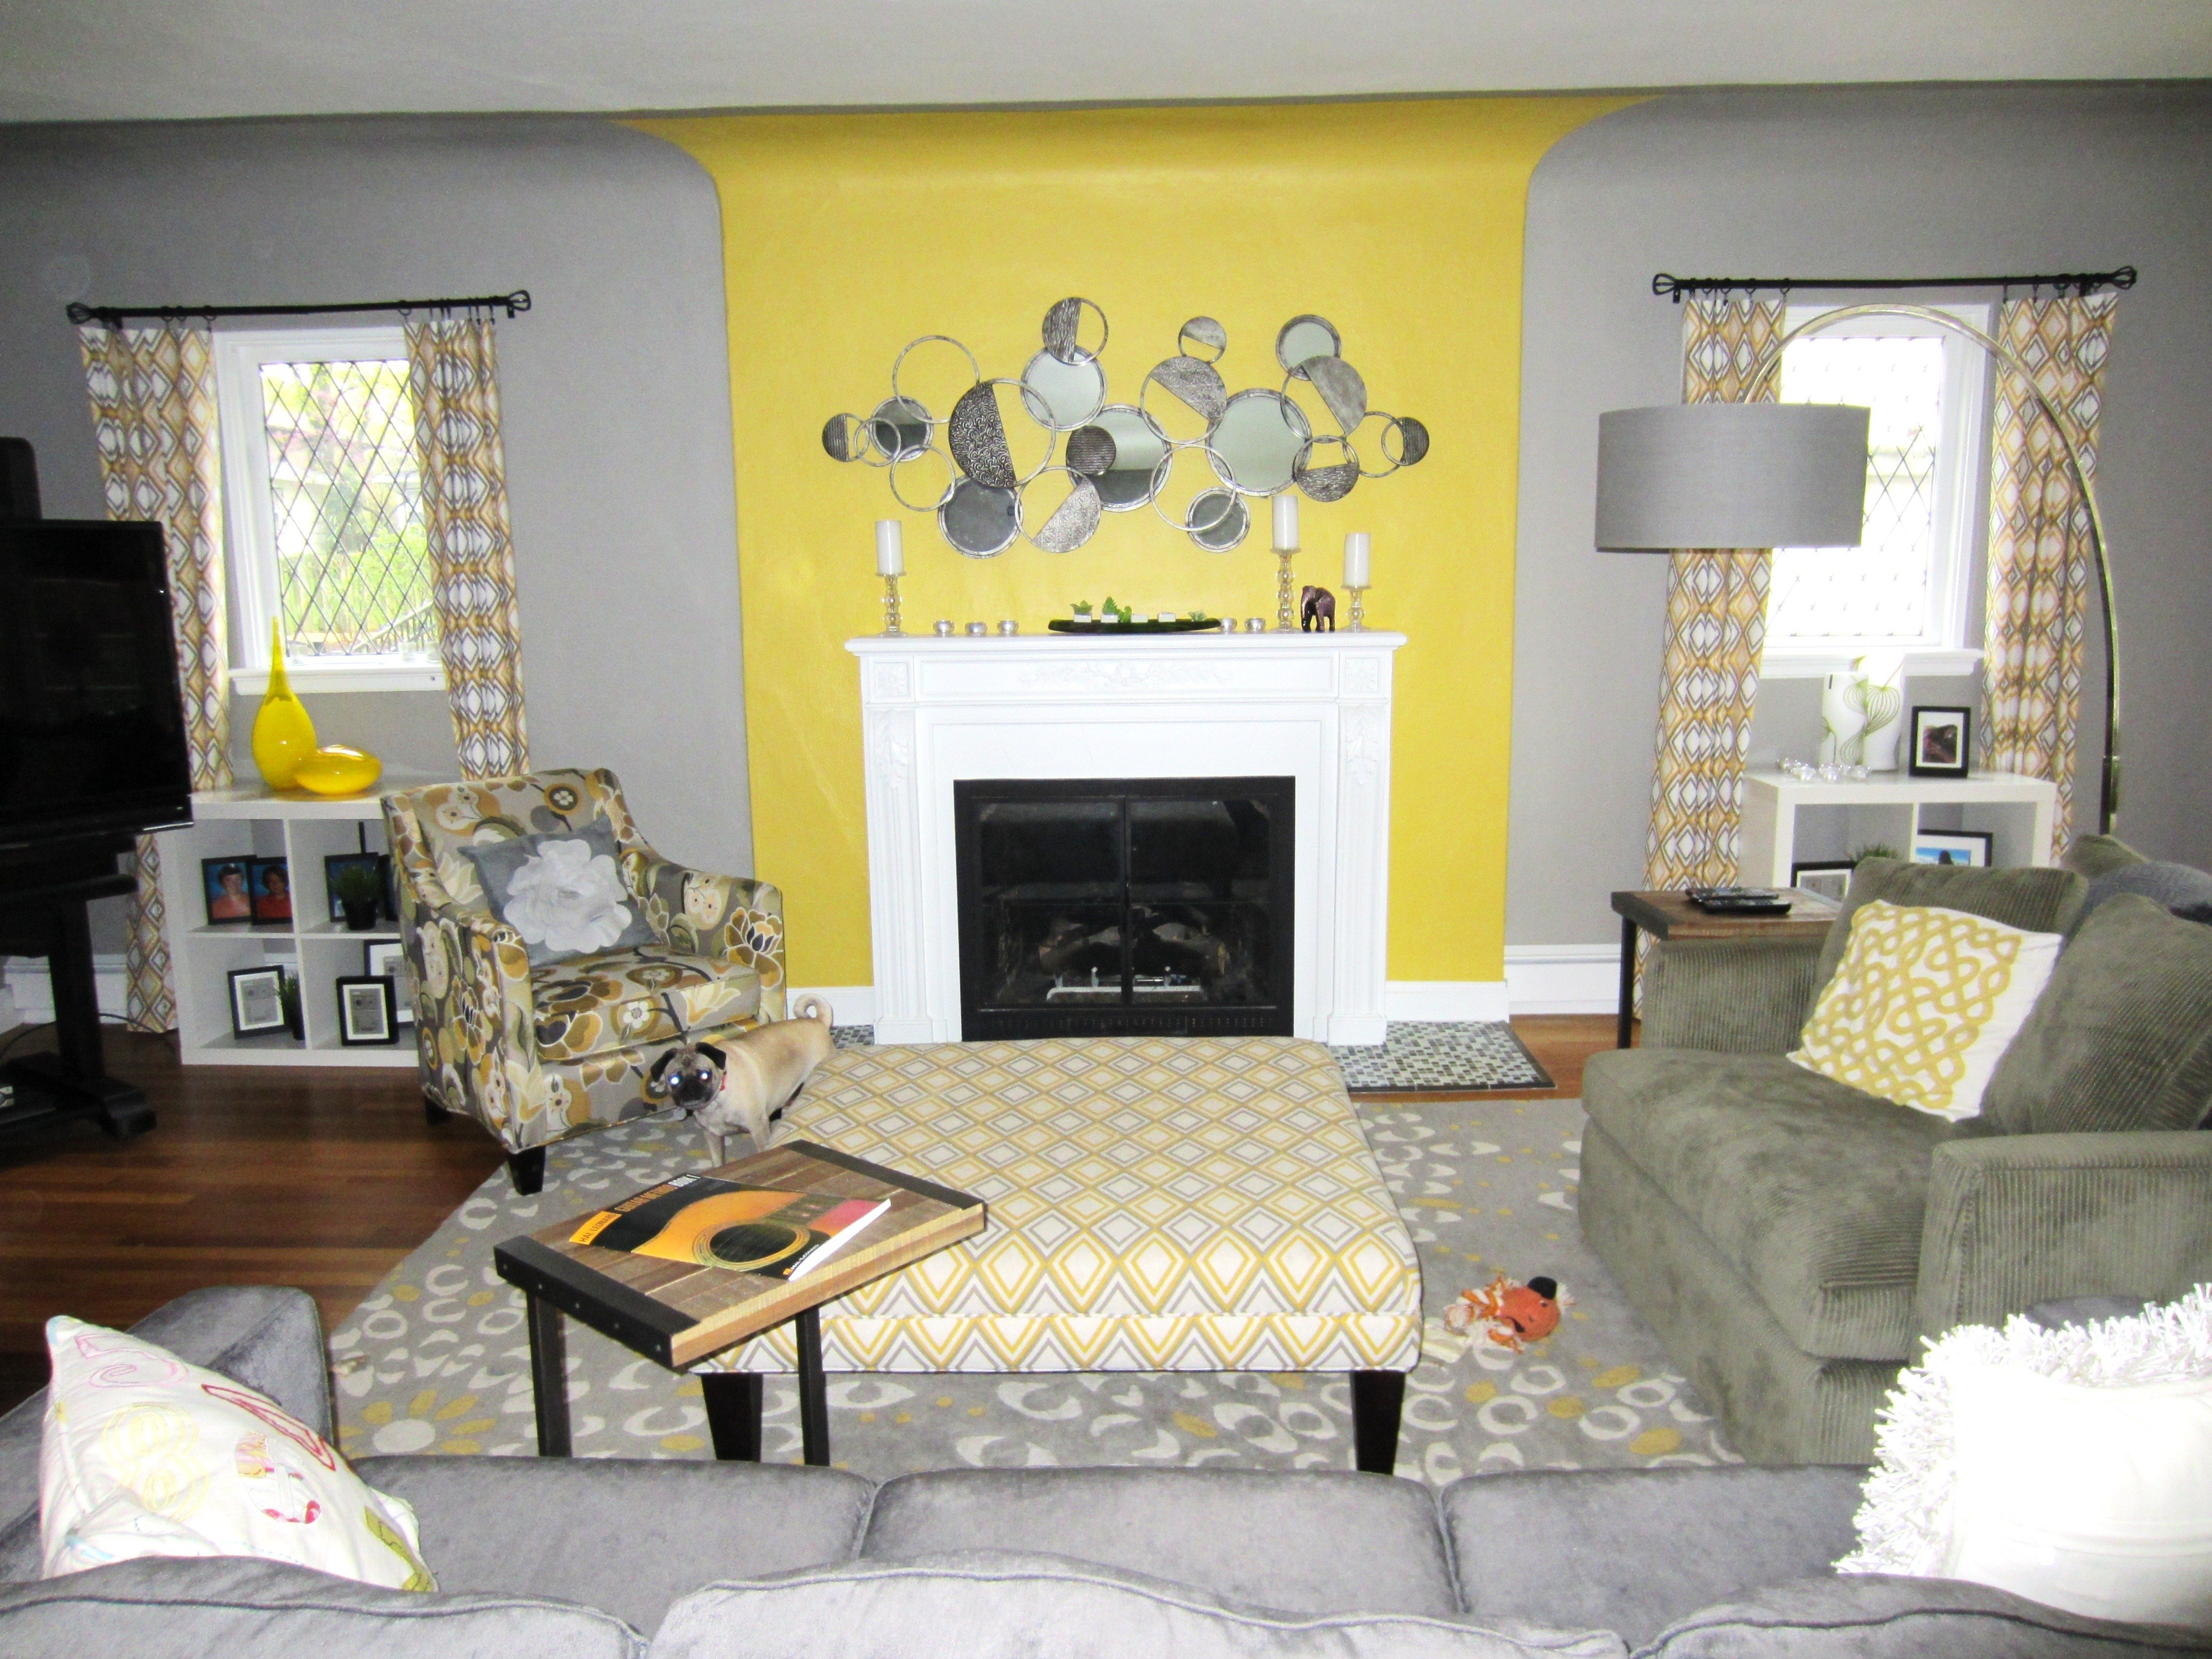 10 Beautiful Gray And Yellow Living Room Ideas yellow and grey living room beautiful interior design grey yellow 2020